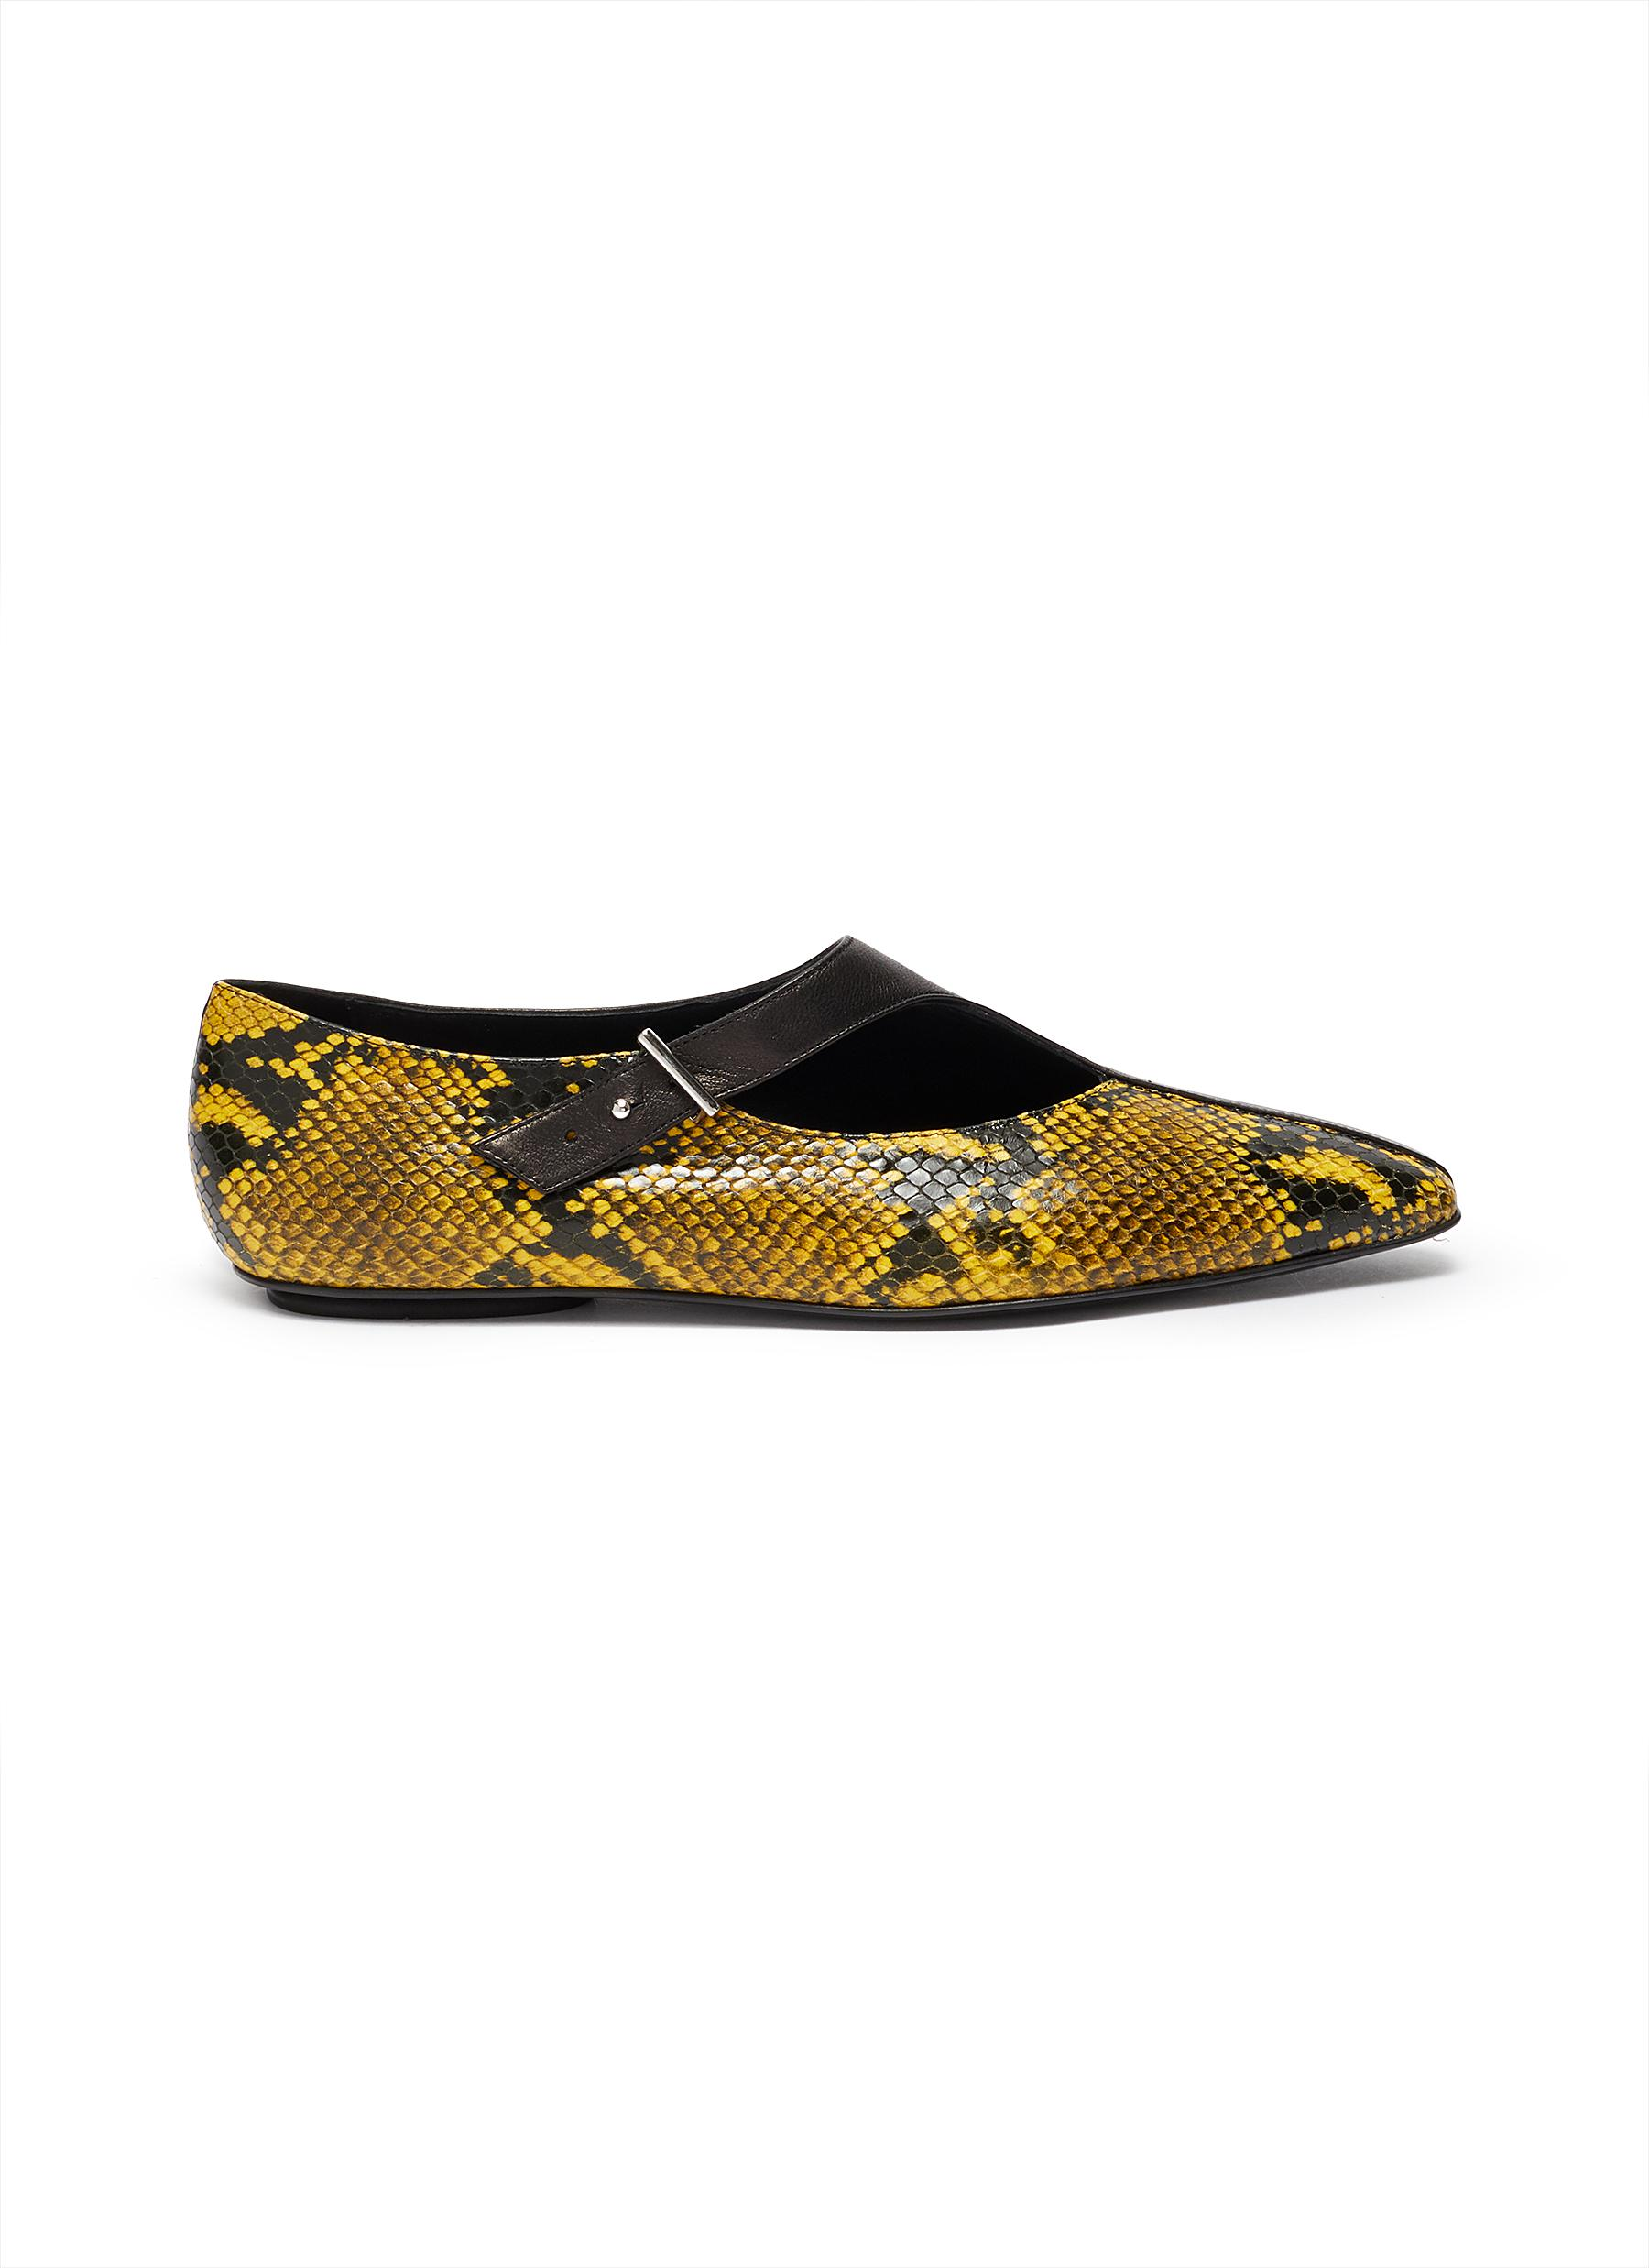 Python embossed panel cutout buckled leather flats by Rosetta Getty